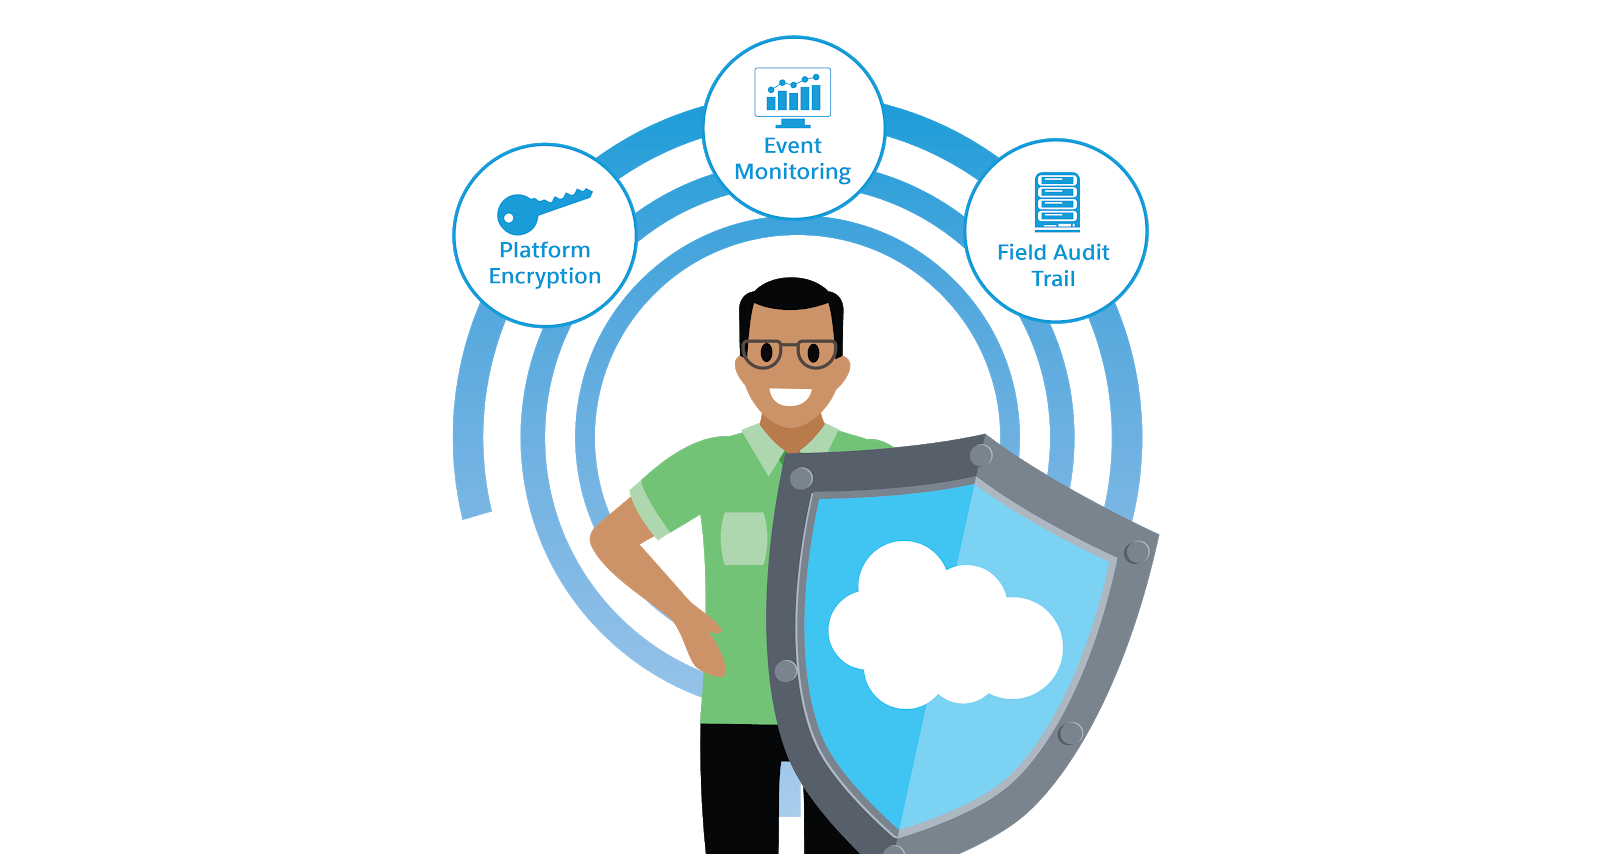 A man with a shield bearing the Salesforce cloud, surrounded by icons representing Platform Encryption, Event Monitoring, and Field Audit Trail.